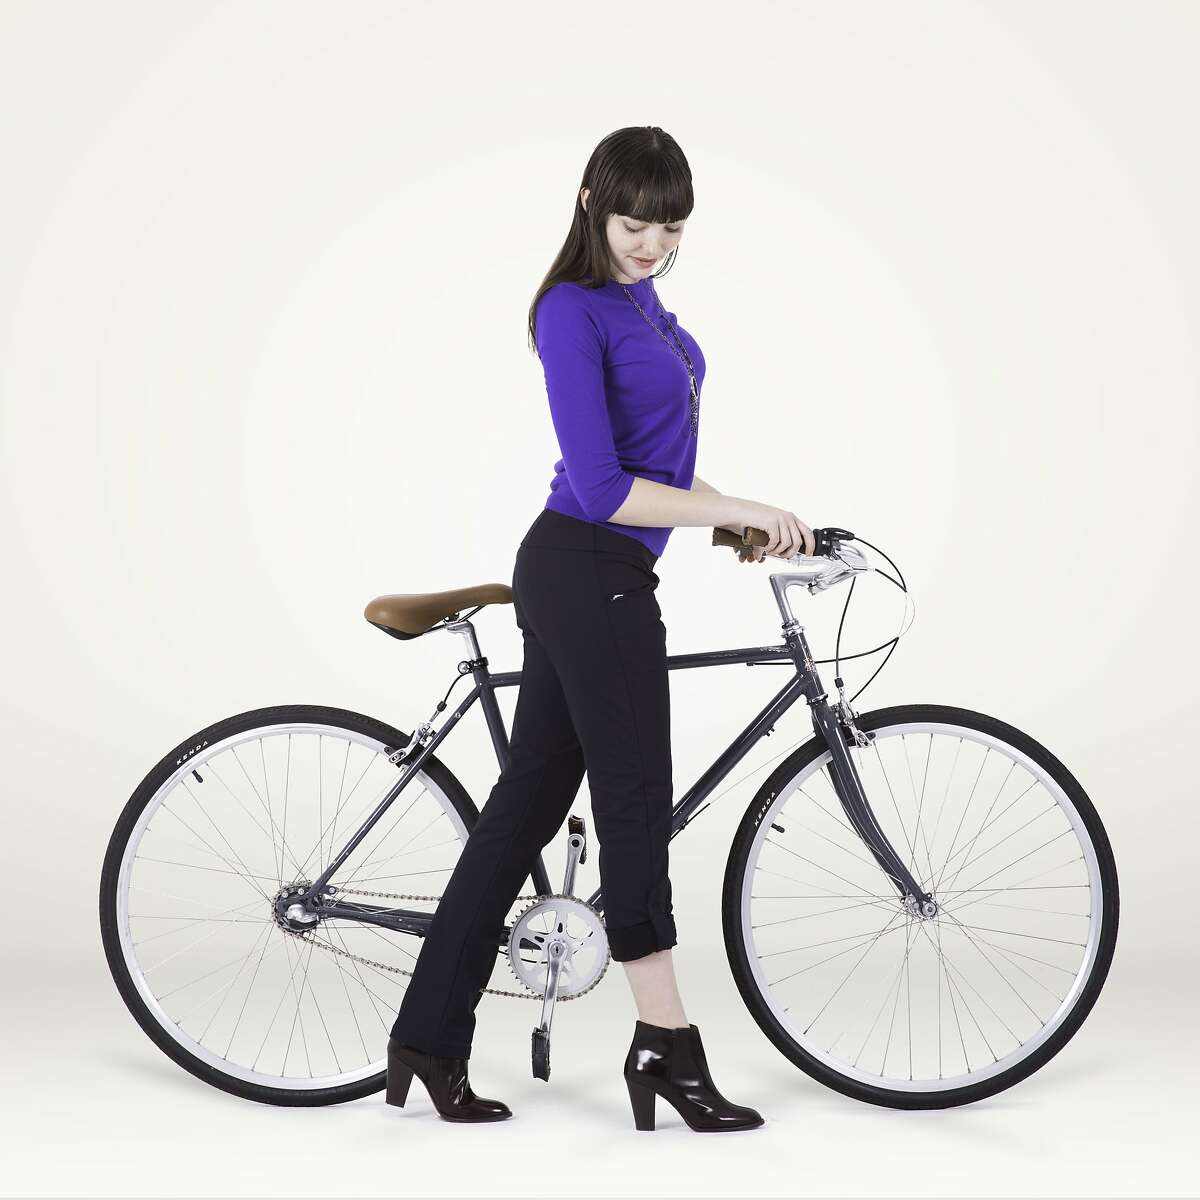 """Iladora Apparel, founded by San Francisco's Ilana Siegelman and Meghan Murphy just more than a year ago, was created specifically for women commuters like them. They started with the """"Perfect Bike Pant,"""" which was inspired by equestrian gear with working gals in mind. Features includes splash-resistant fabric, a waistband that prevents rear-end peek-a-boo and a trouser-like silhouette. The Perfect Bike Pant, Iladora Apparel, $135, www.iladora.com"""